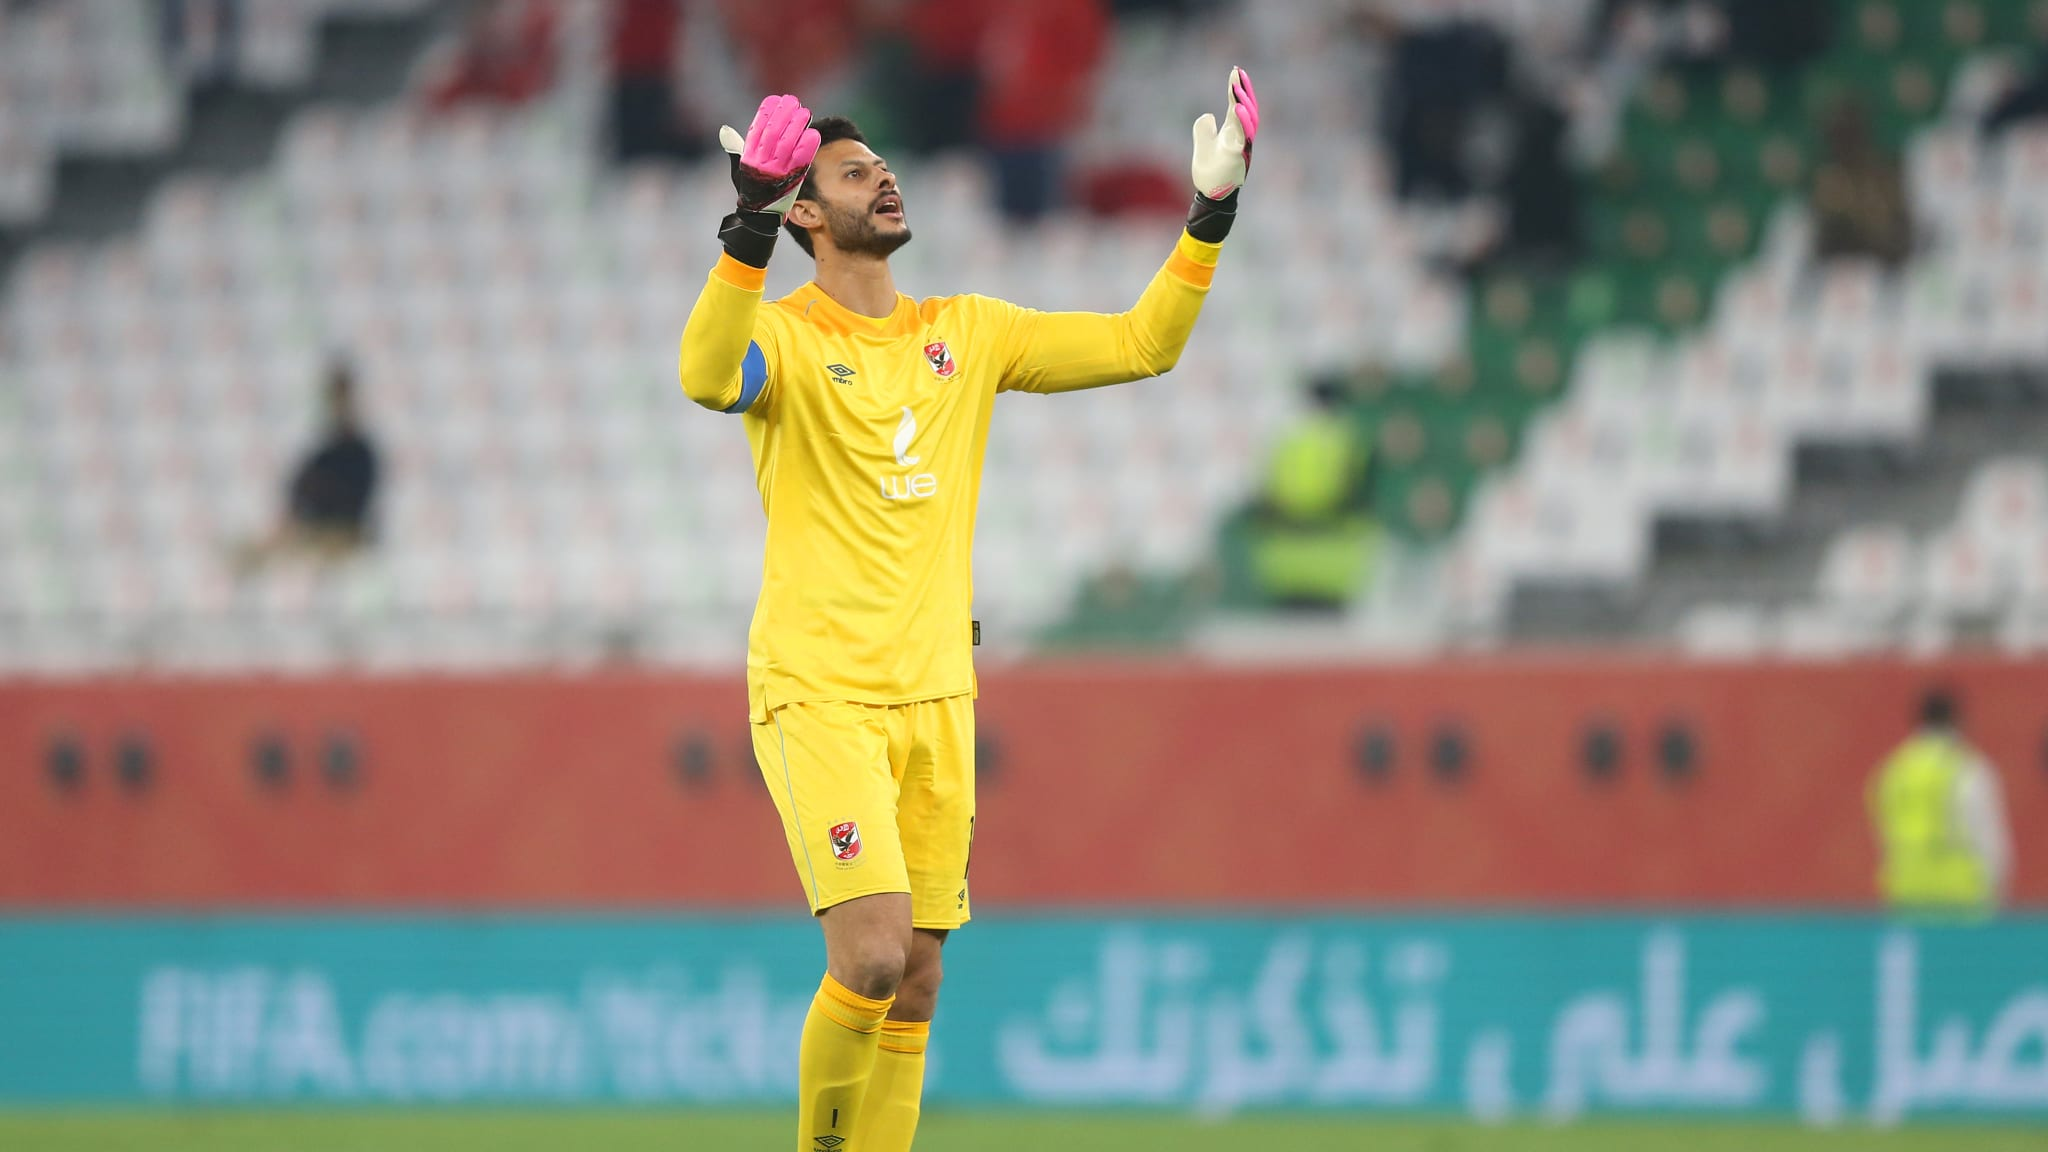 Mohamed El Shenawy of Al Ahly SC celebrates during the FIFA Club World Cup